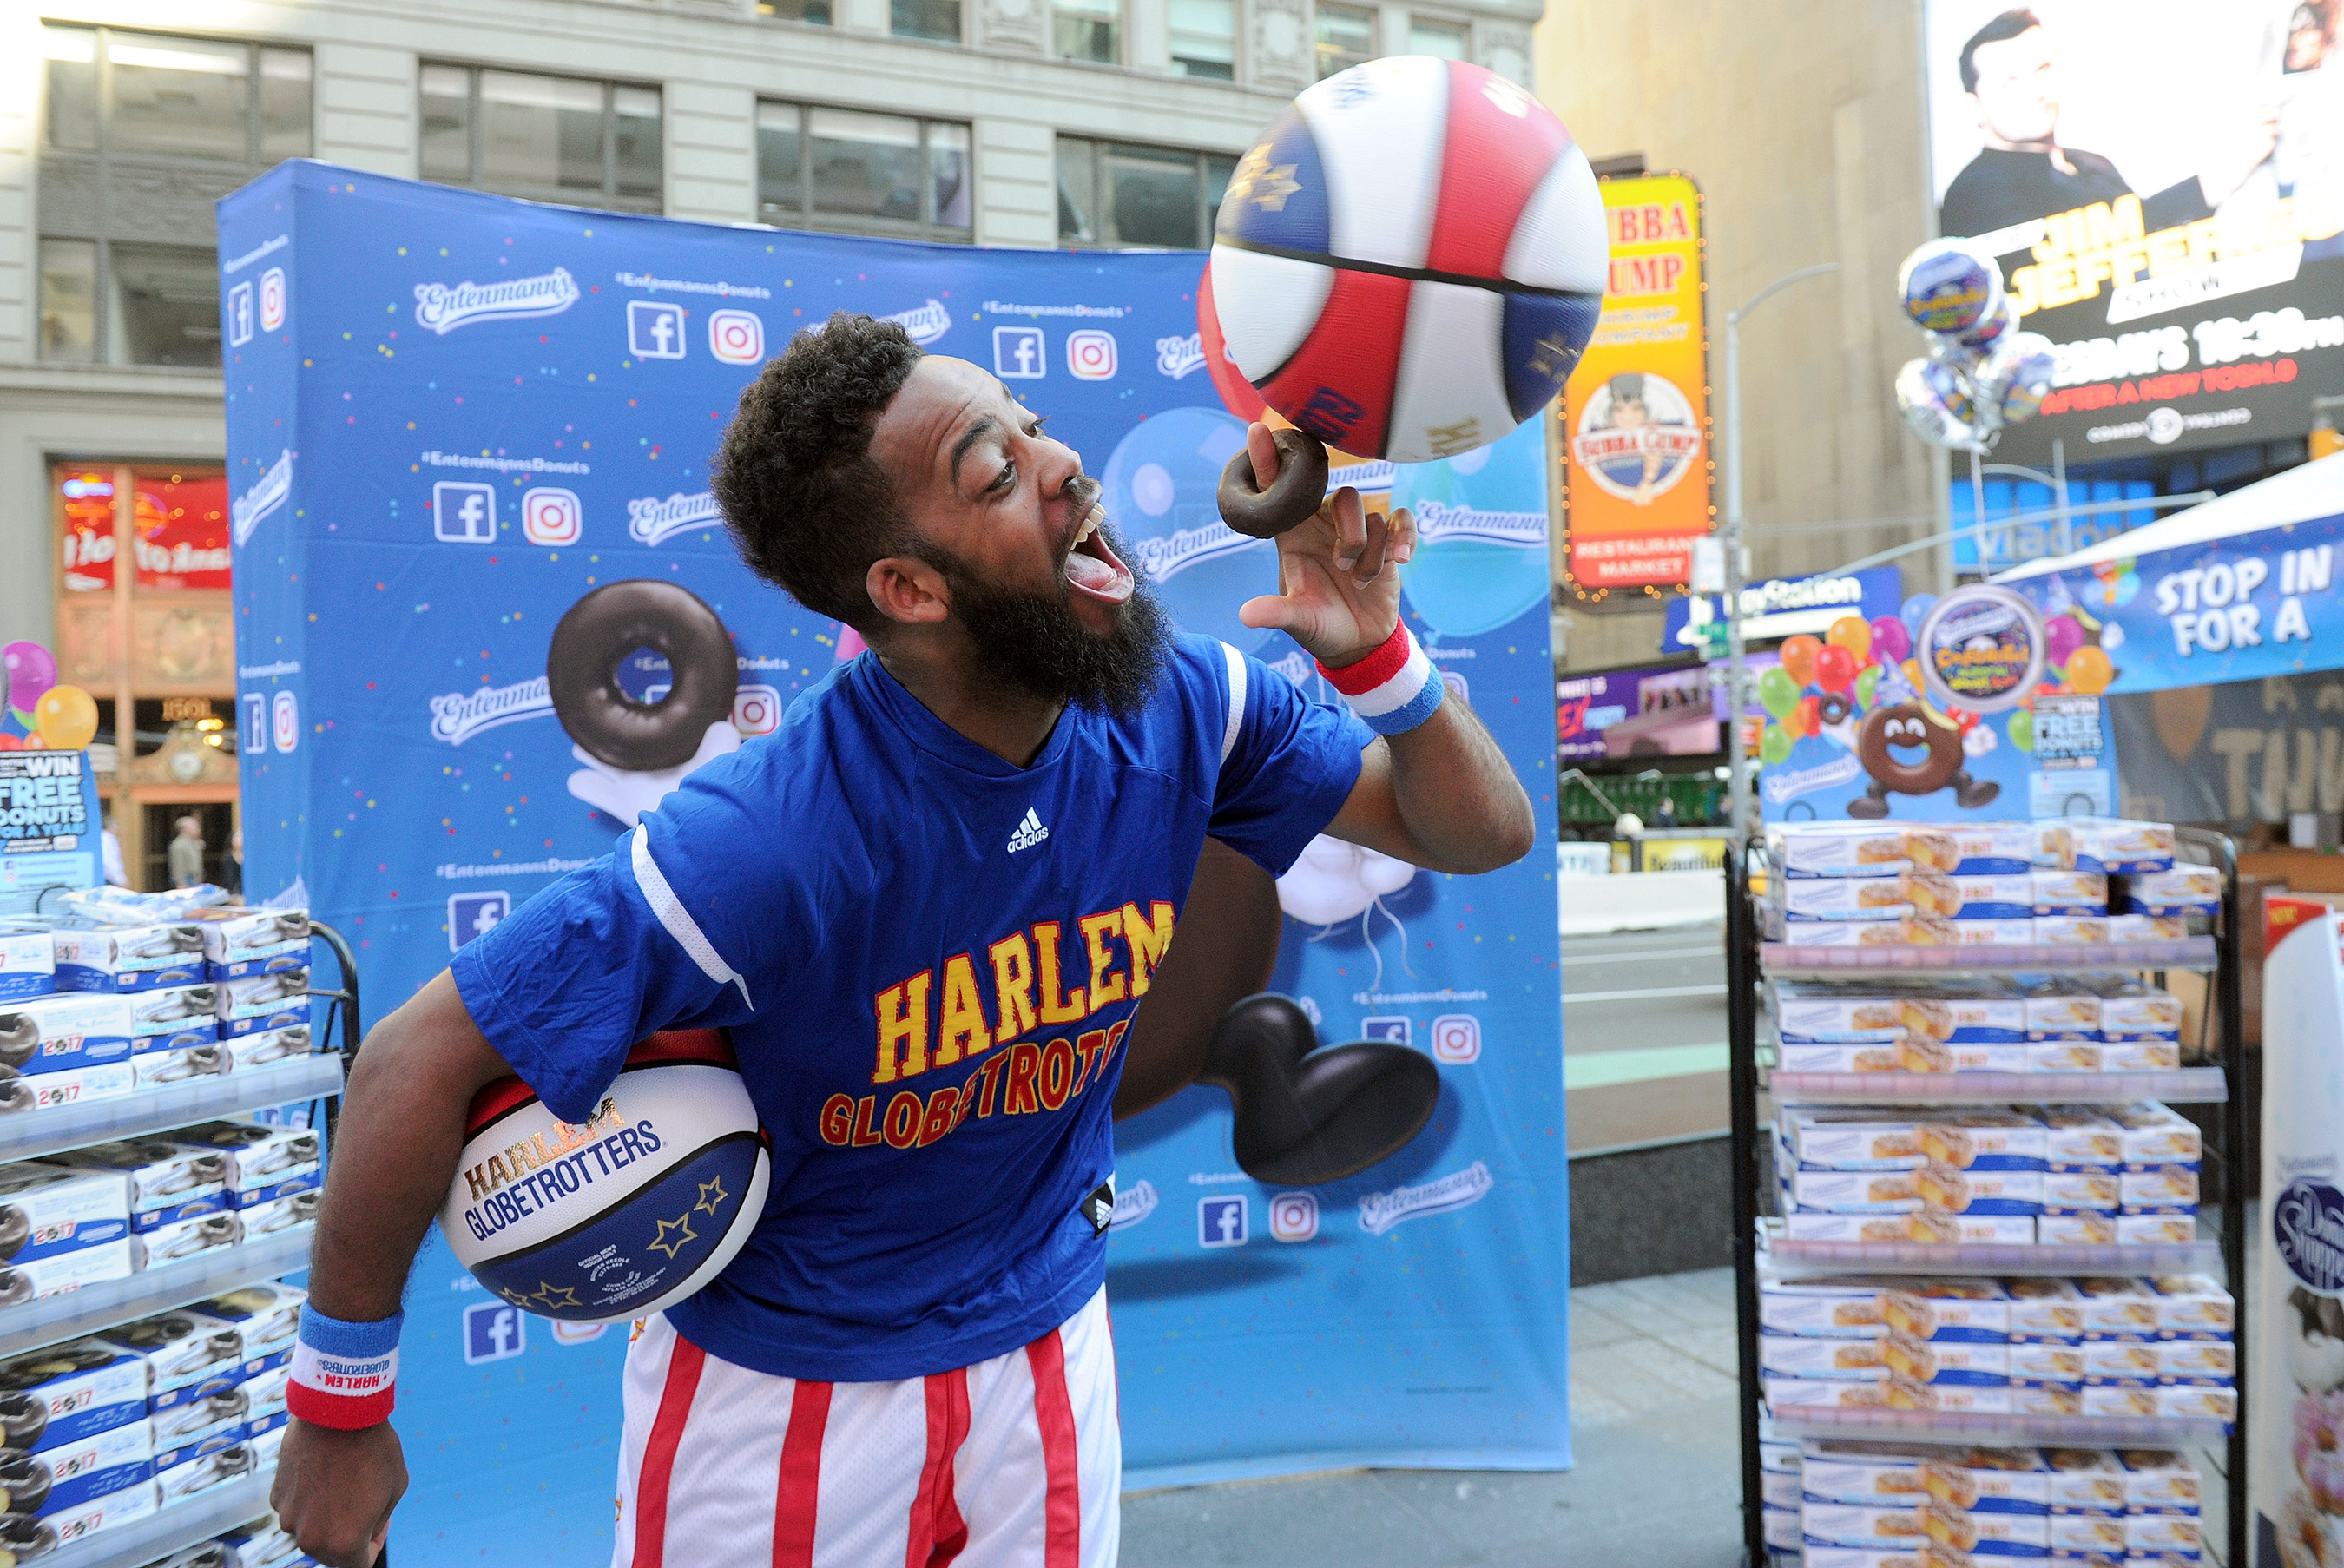 Ant, of the world famous Harlem Globetrotters, celebrates National Donut Day with Entenmann's in New York's Times Square, Friday, June 2, 2017.